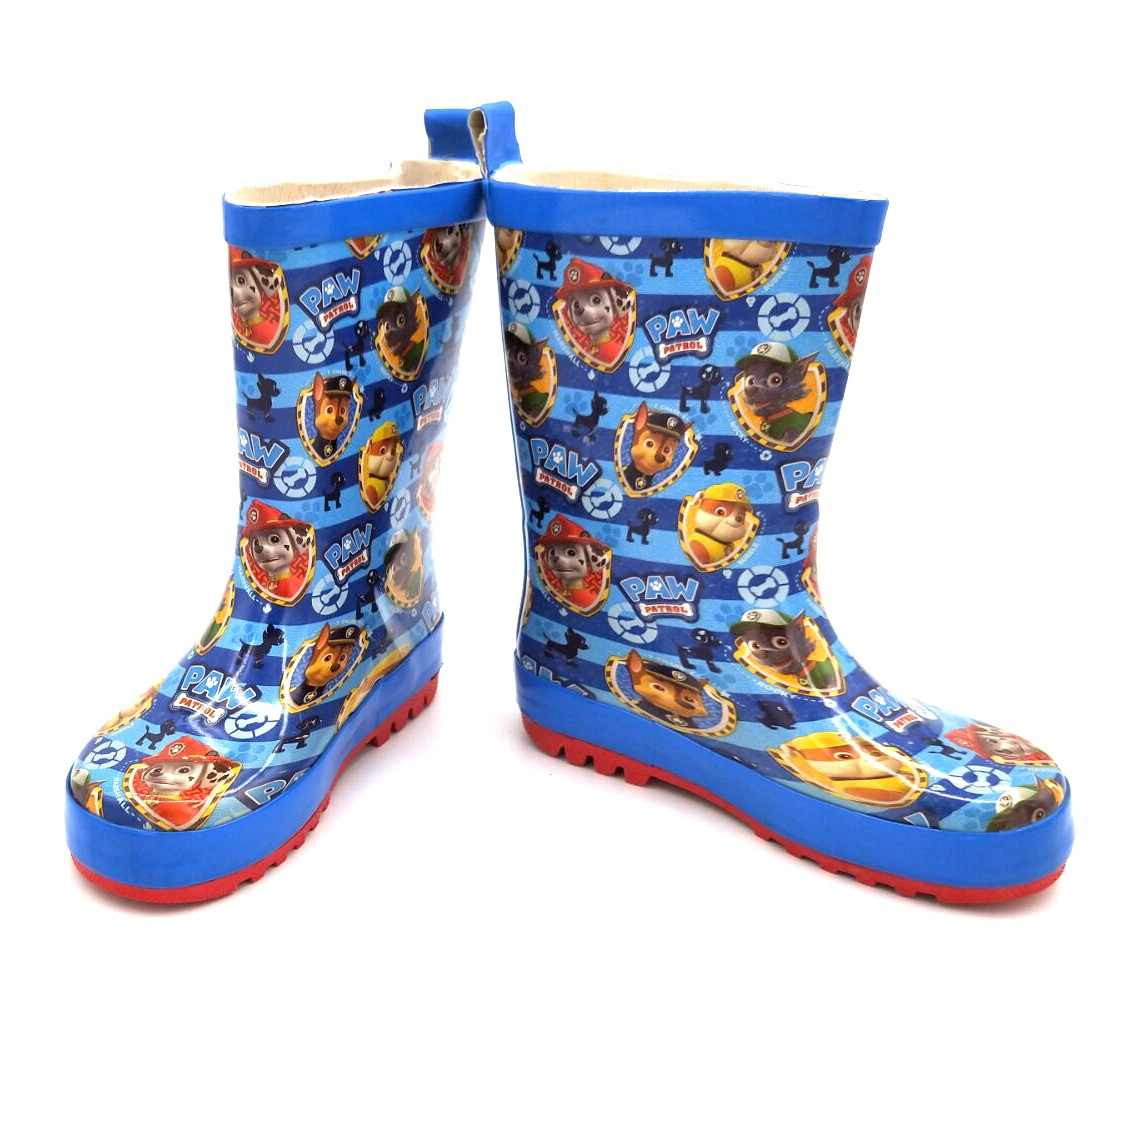 Children's boys water shoes girls rain boots primary school water boots kindergarten cute cartoon plus velvet kids rubber shoes